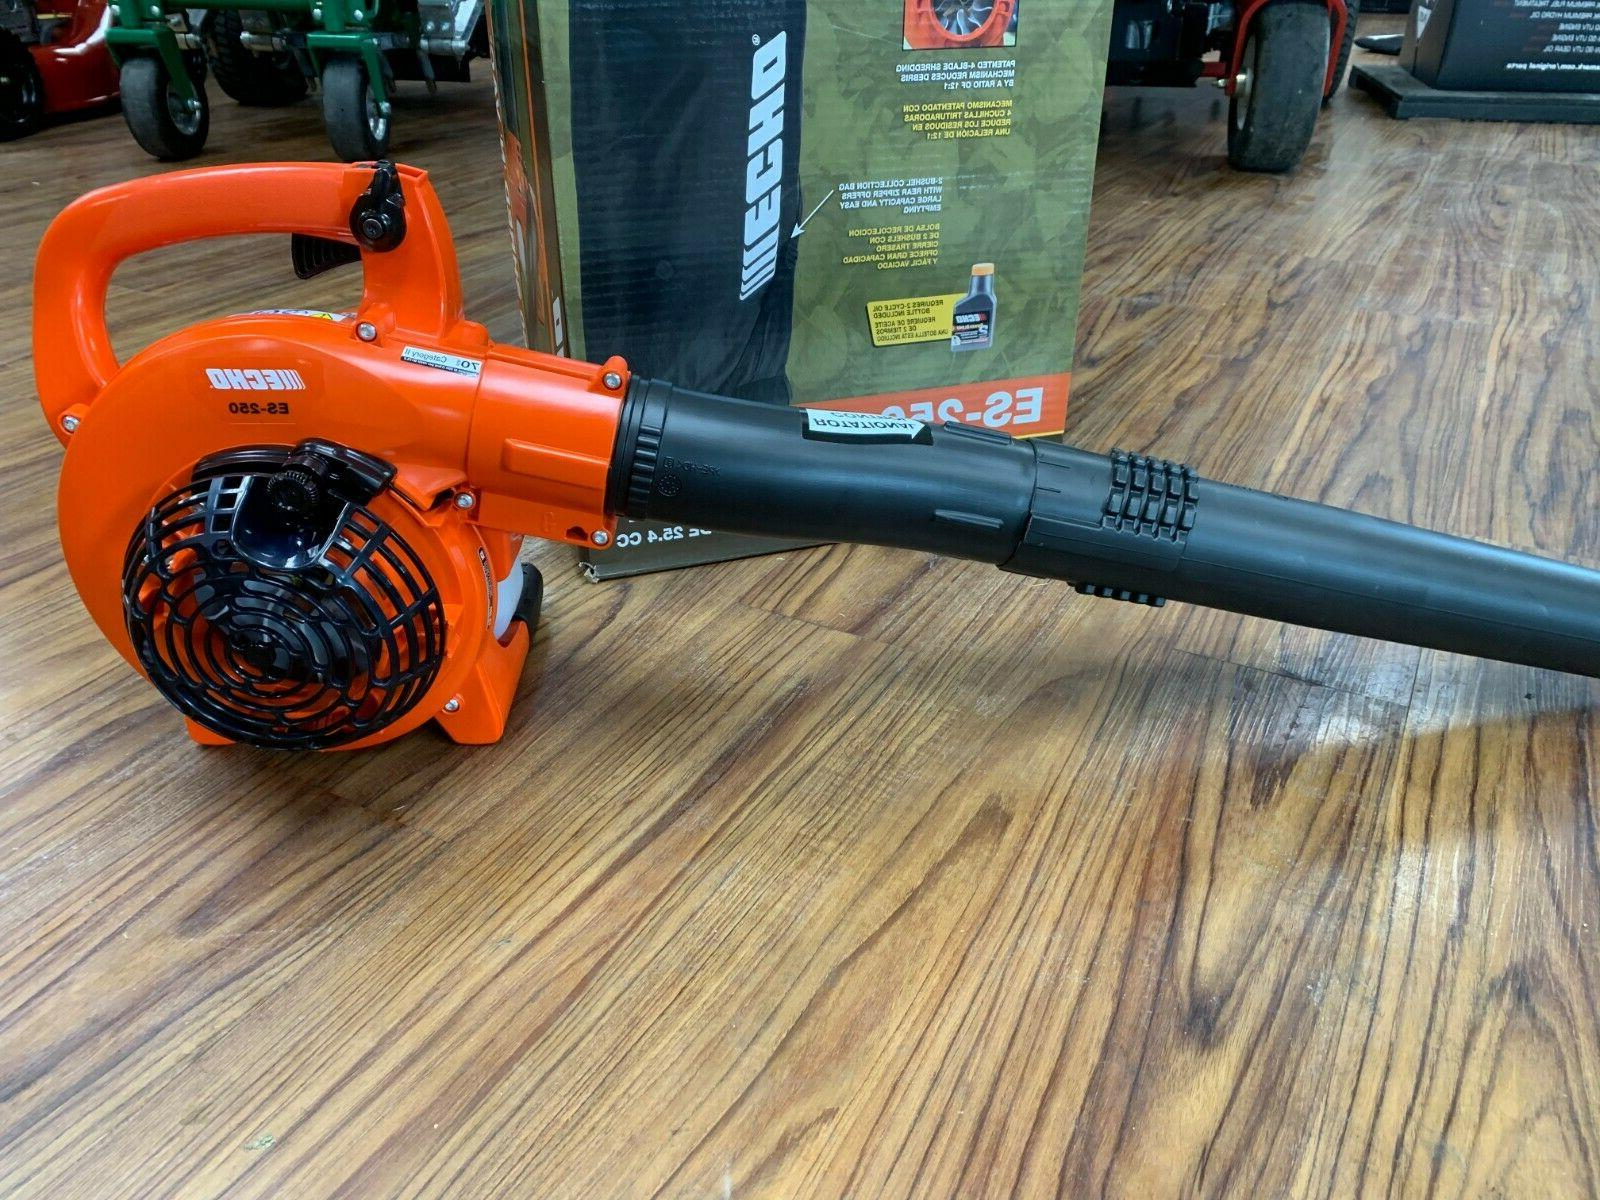 Brand New ECHO Leaf Mulcher 25.4cc 391 CFM